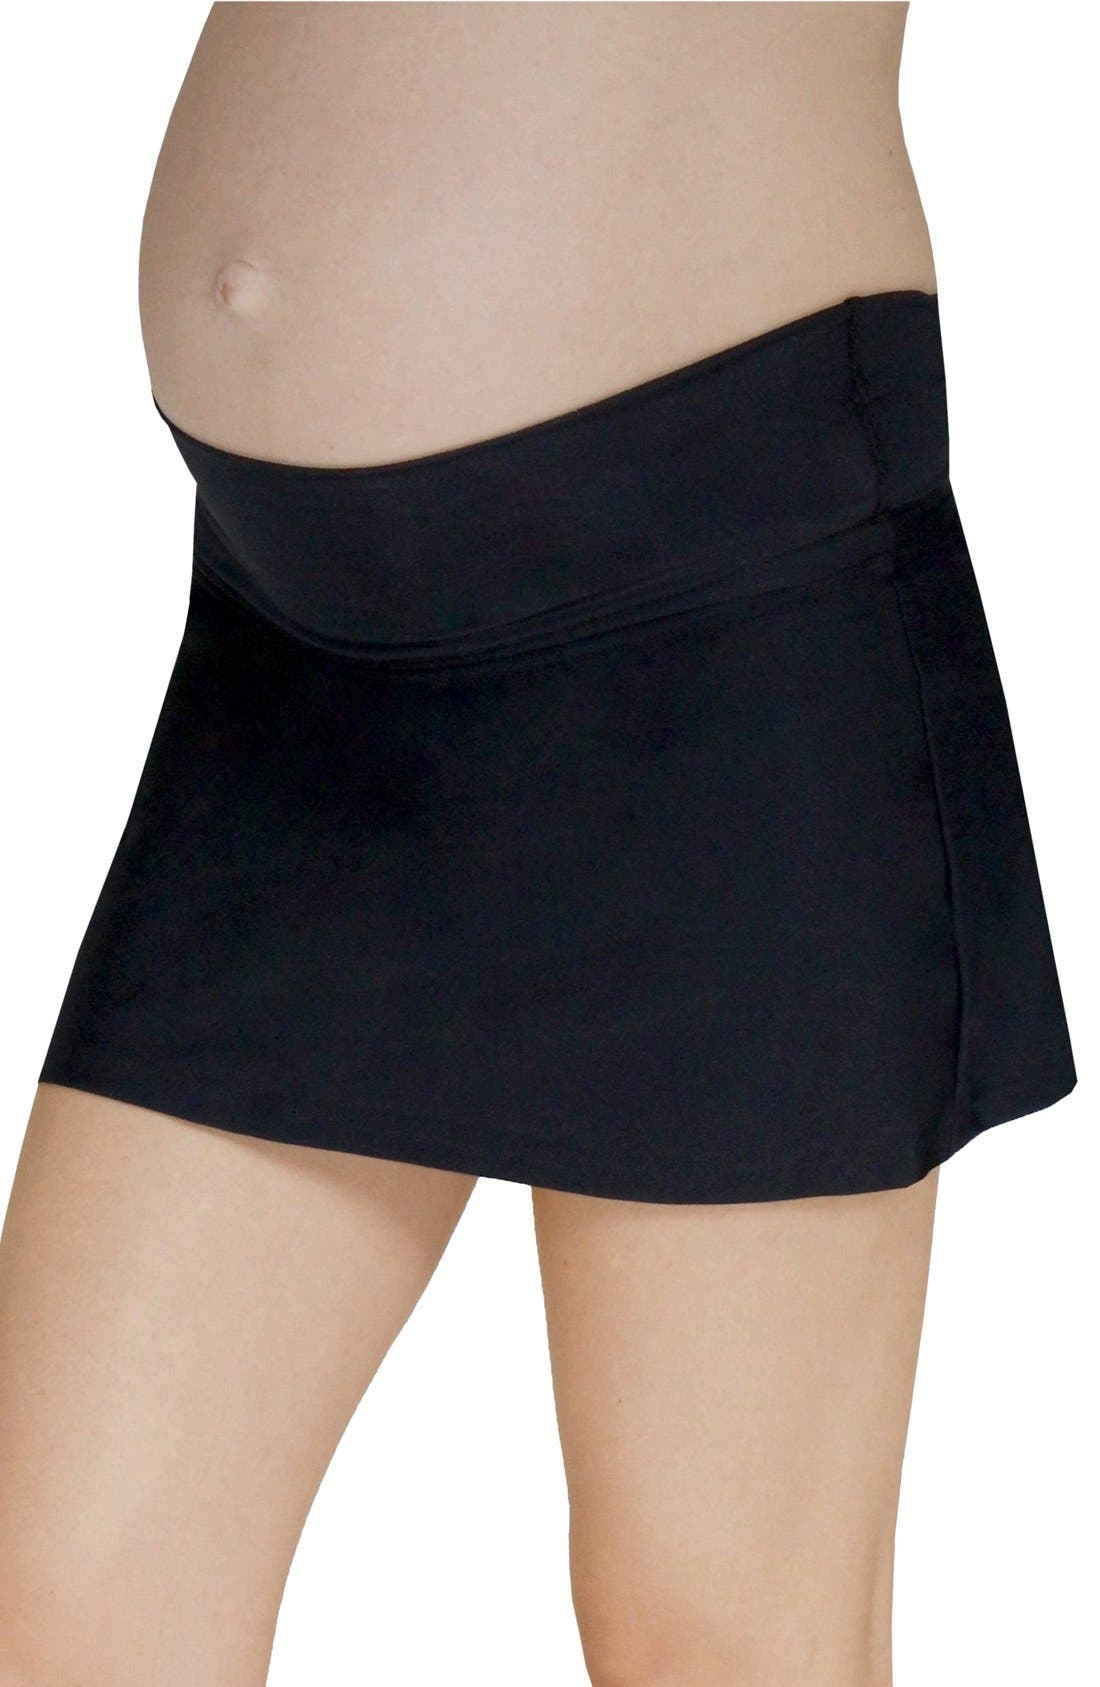 Foldover Maternity Swim Skirt With Attached Briefs,                             Alternate thumbnail 3, color,                             BLACK